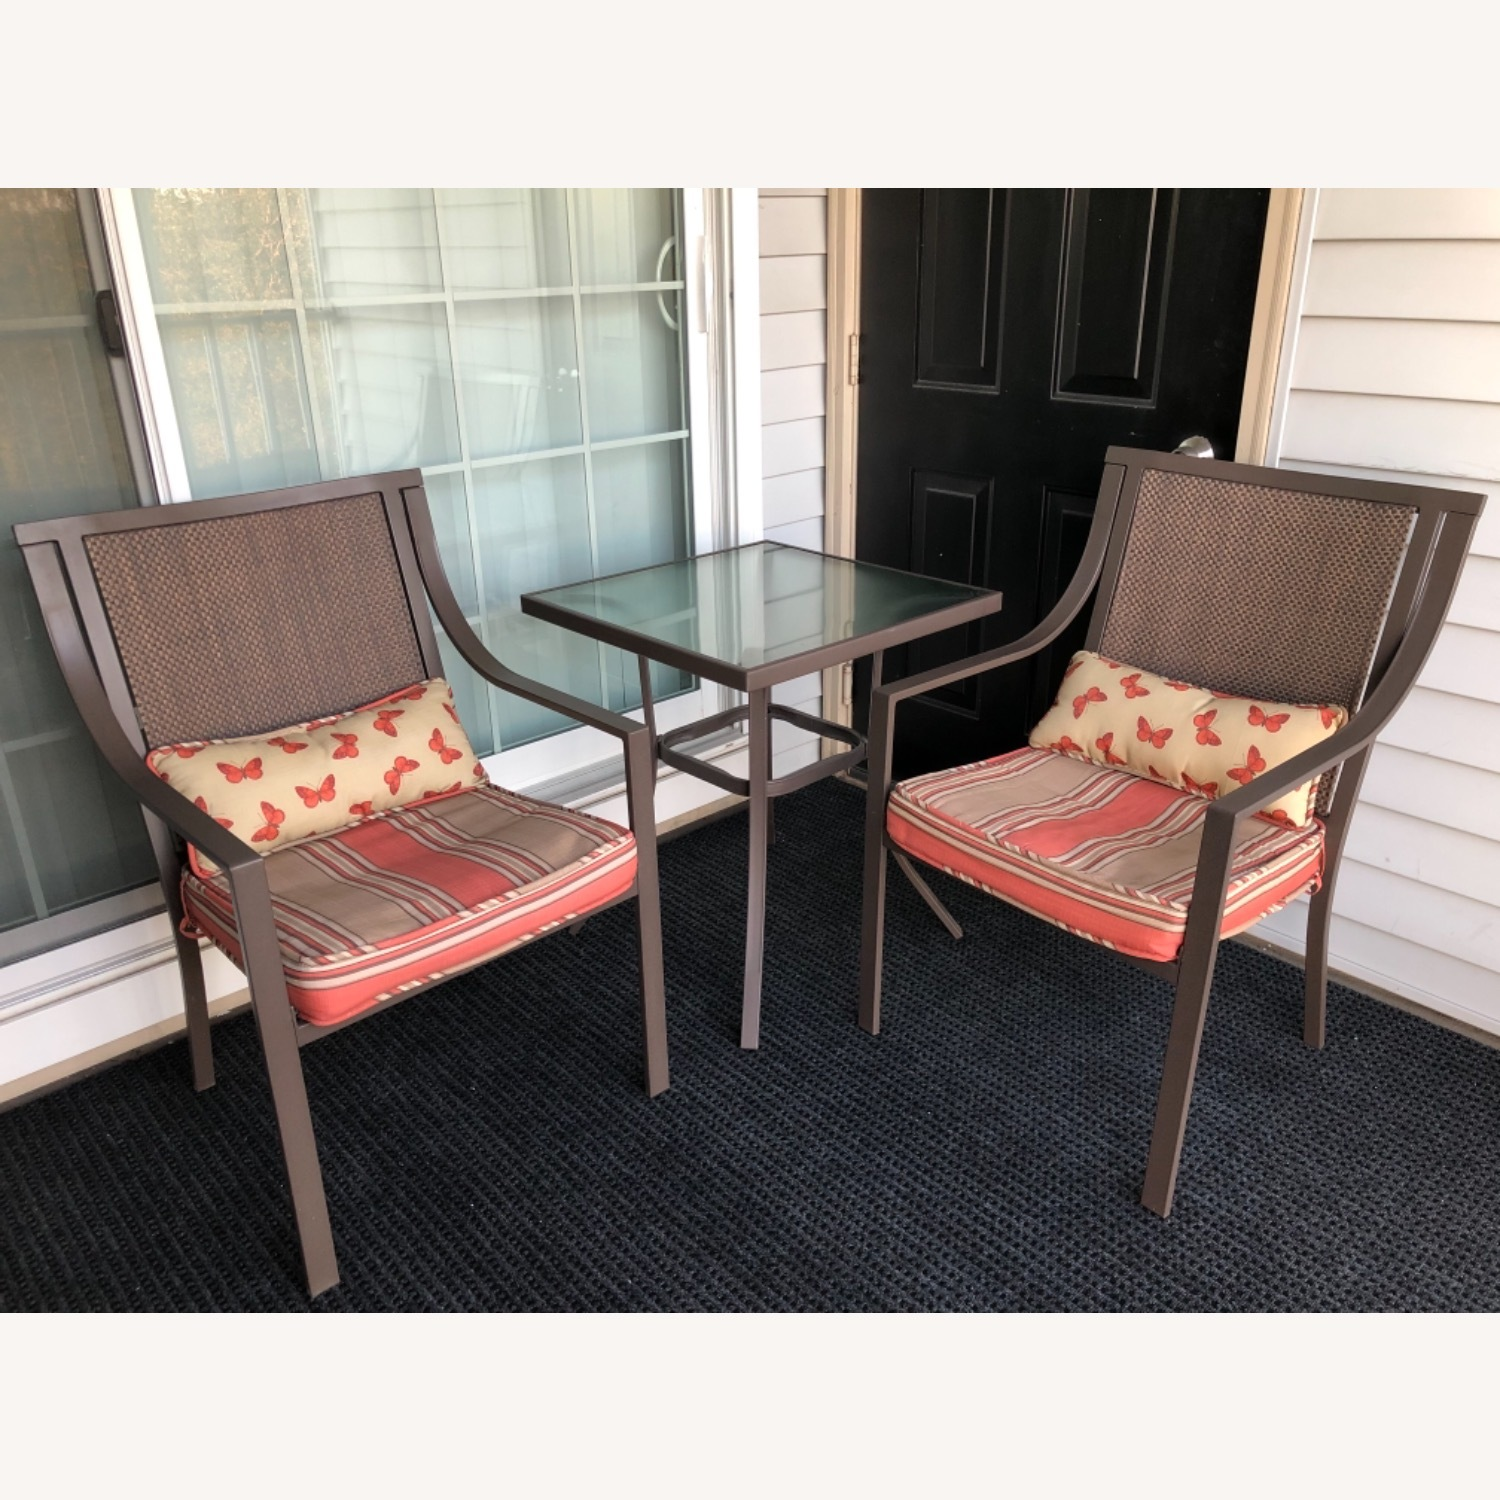 Outdoor Patio Furniture Set - image-2